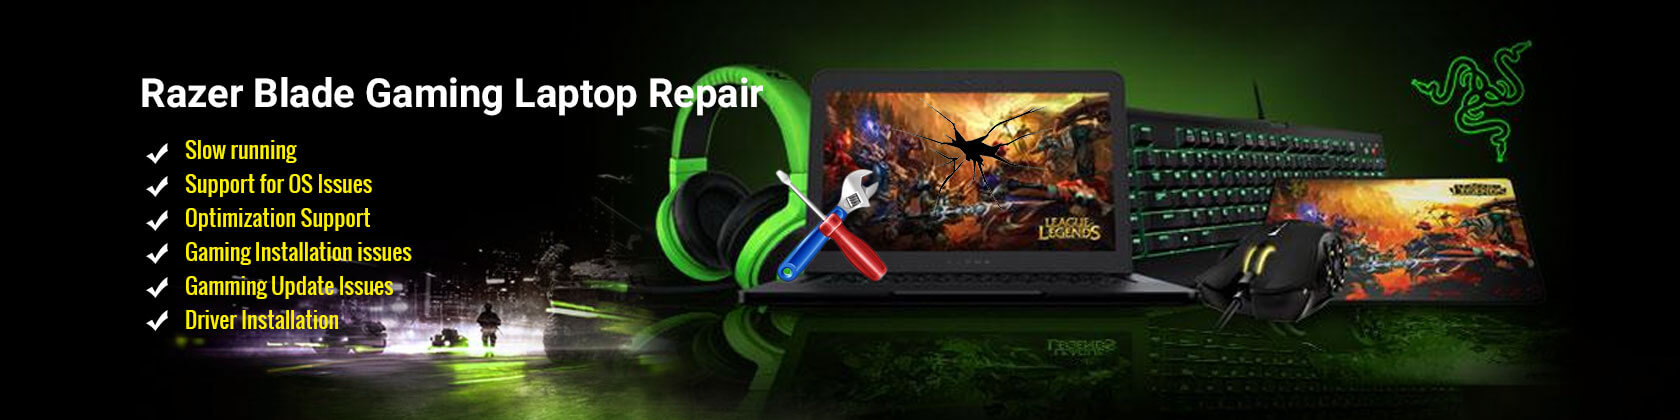 razer-blade-gaming-laptop-banner